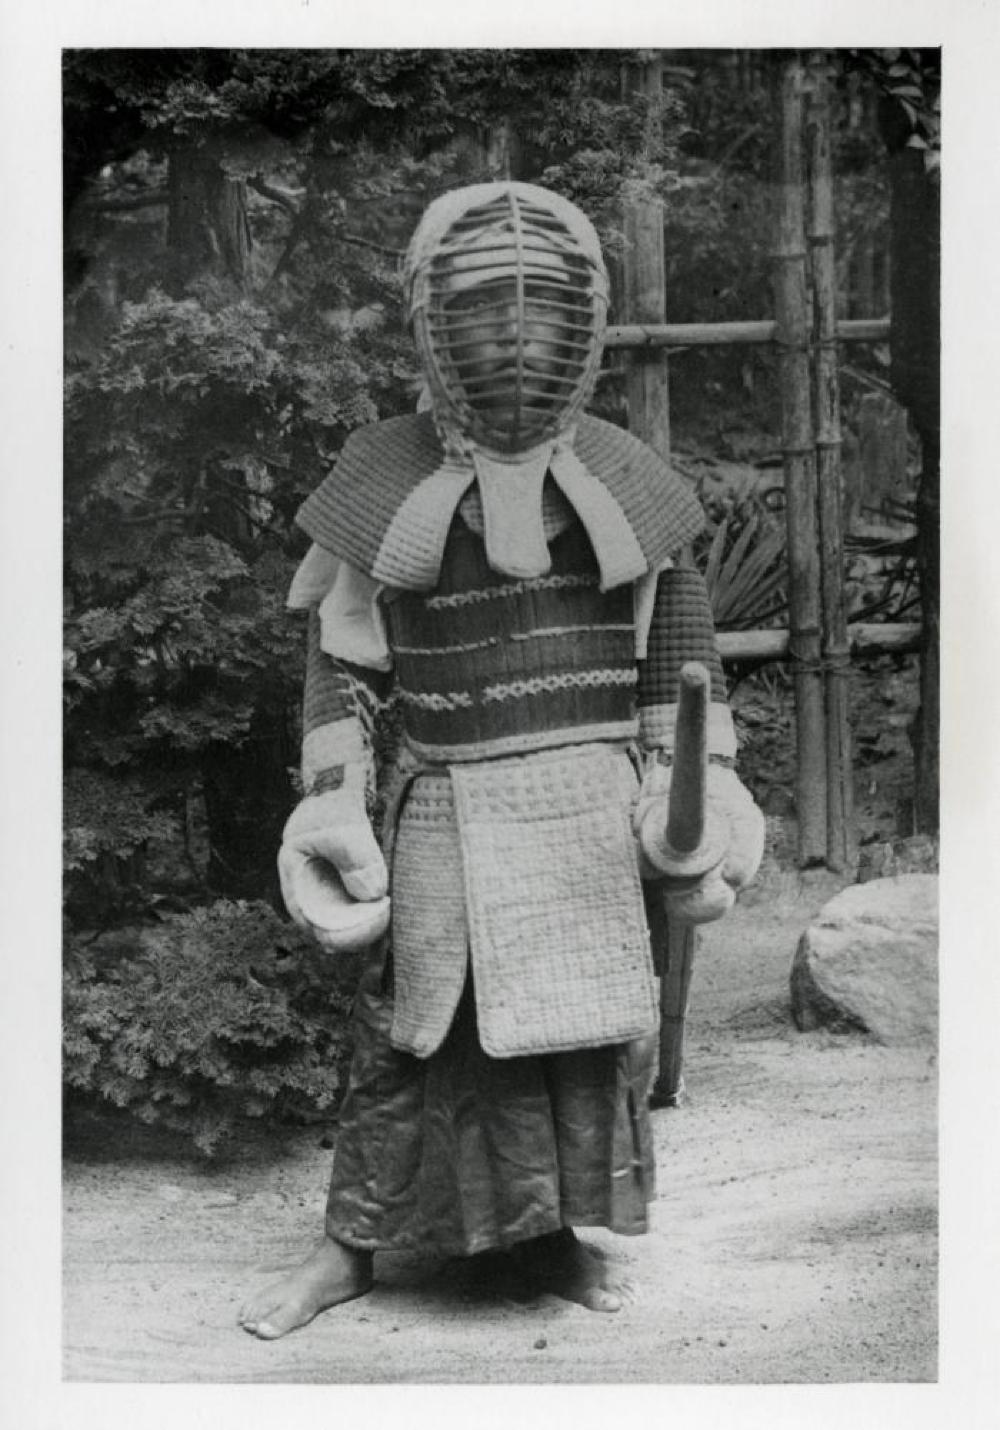 Isamu Noguchi as a child in Japan, wearing Japanese fencing (Kendo) gear